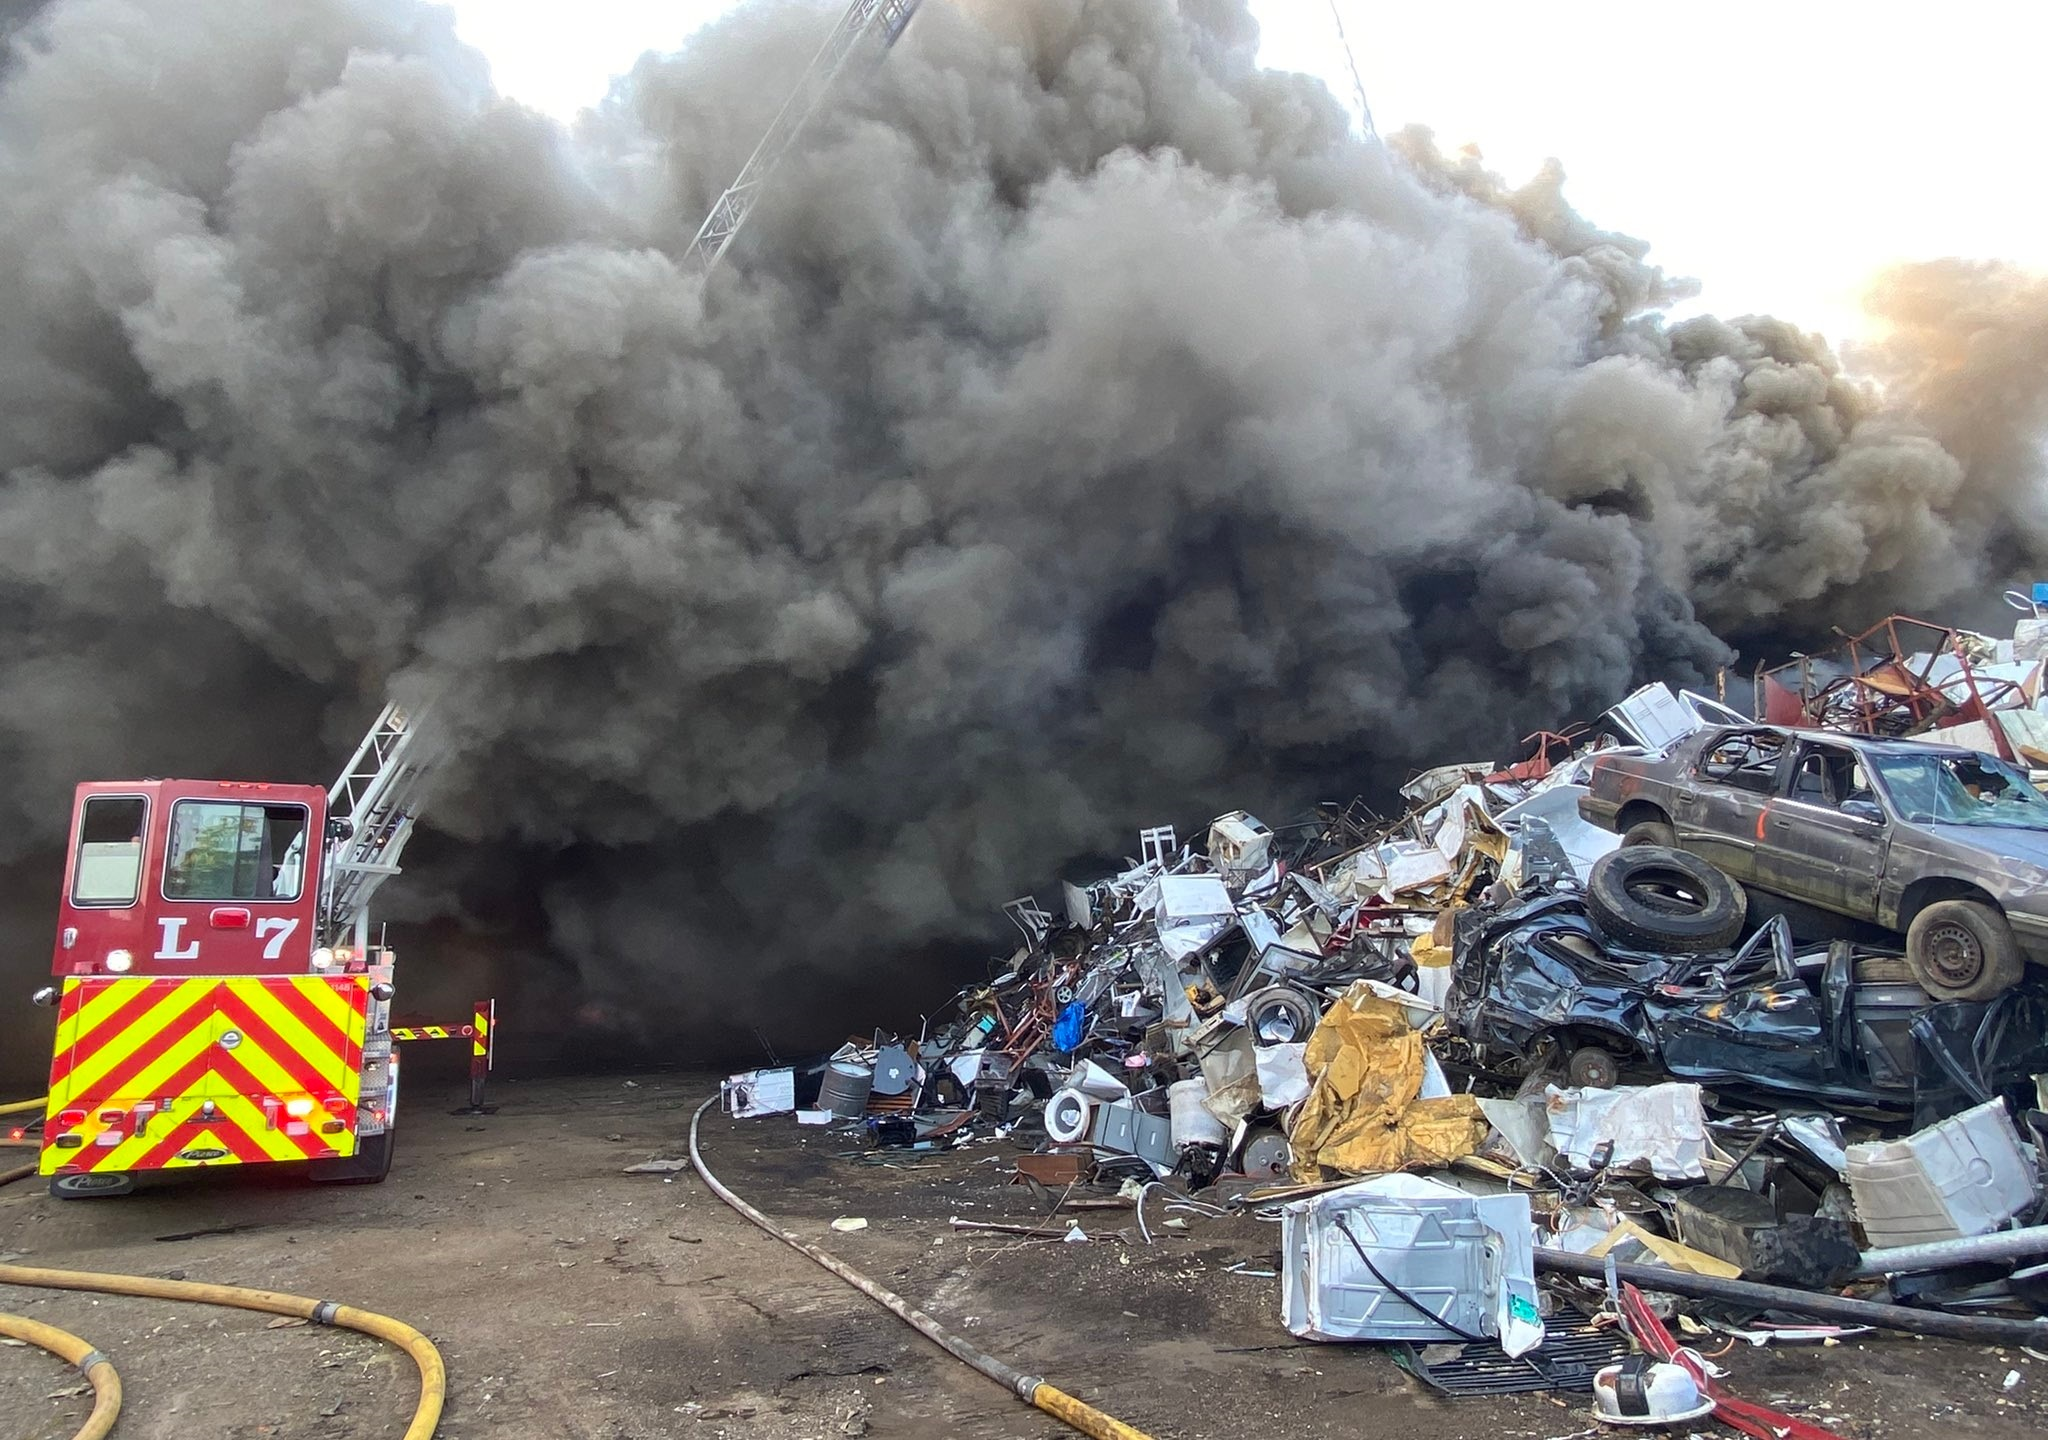 Crews battle scrap metal fire on Indianapolis' near south side